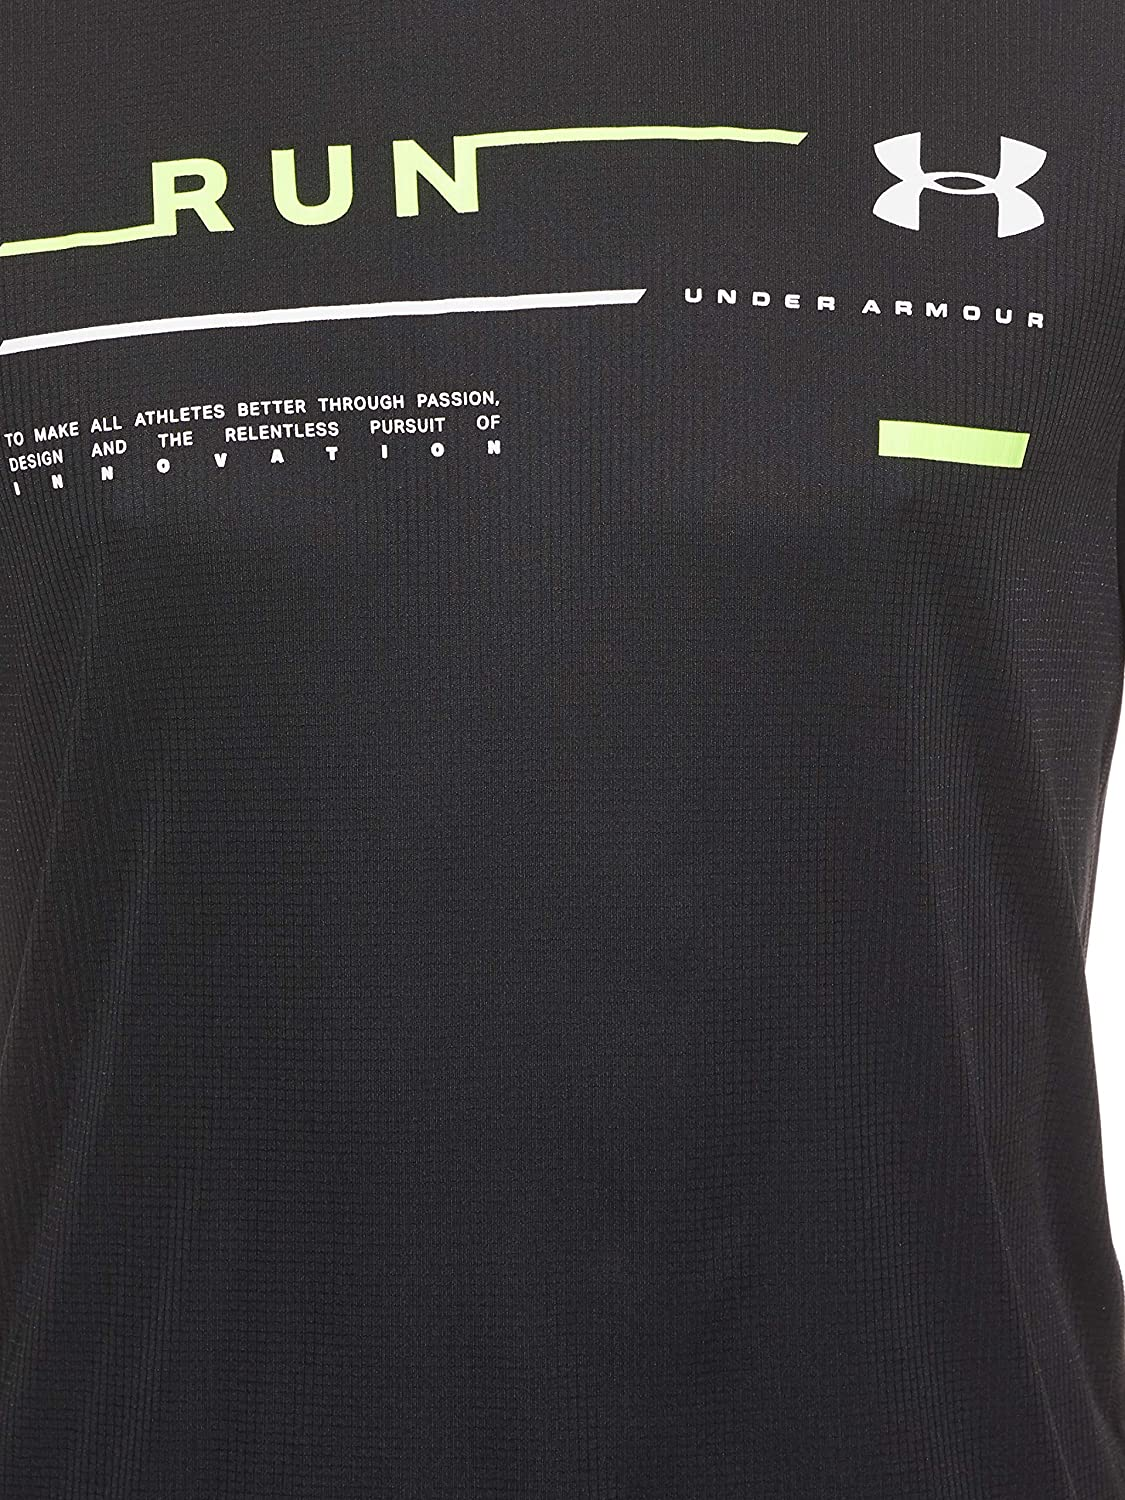 Under Armour mens Run Graphic Tee